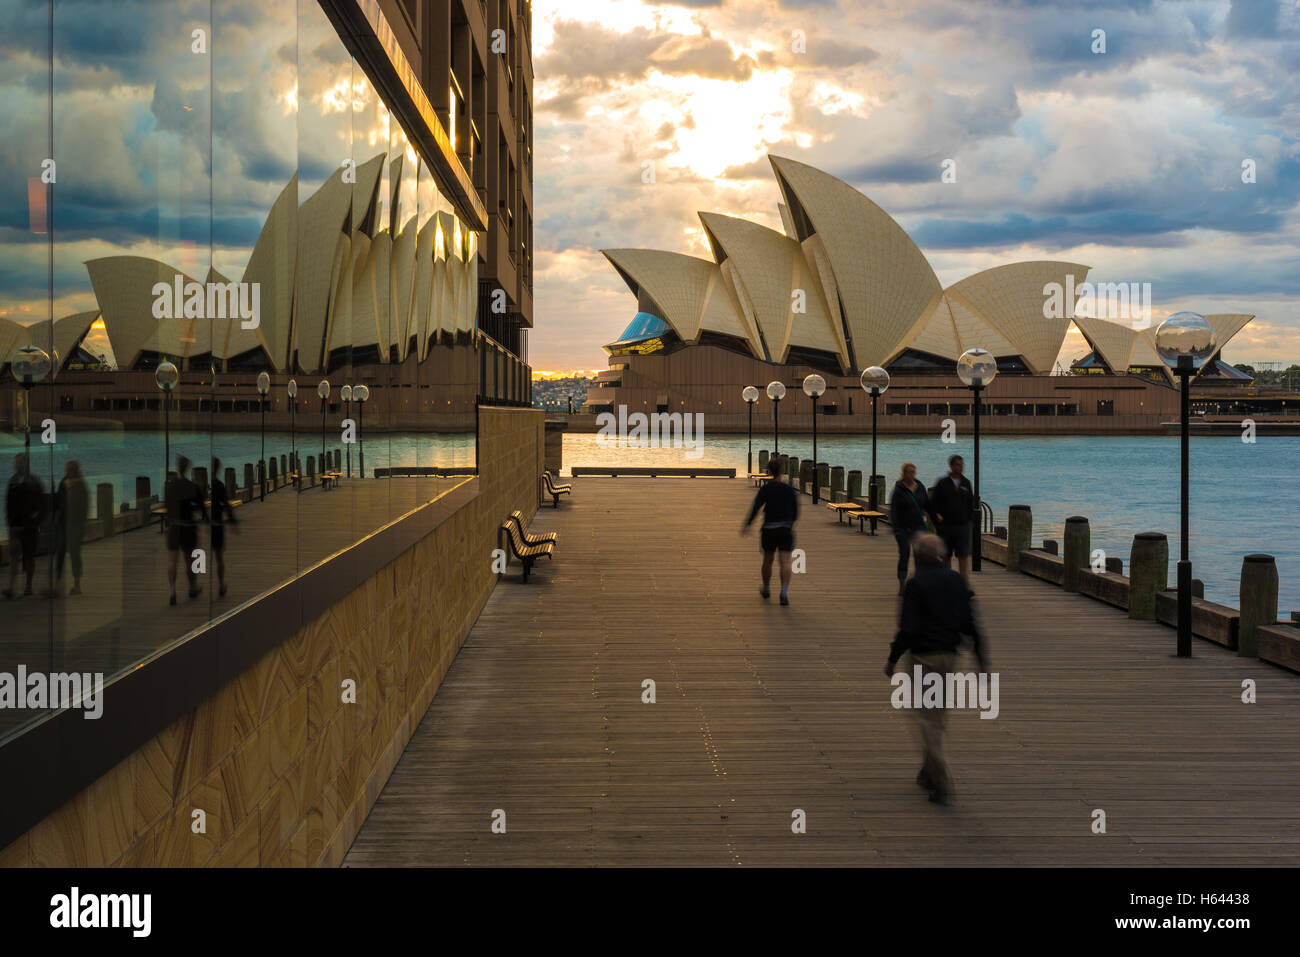 Sydney Opera house reflection - Stock Image